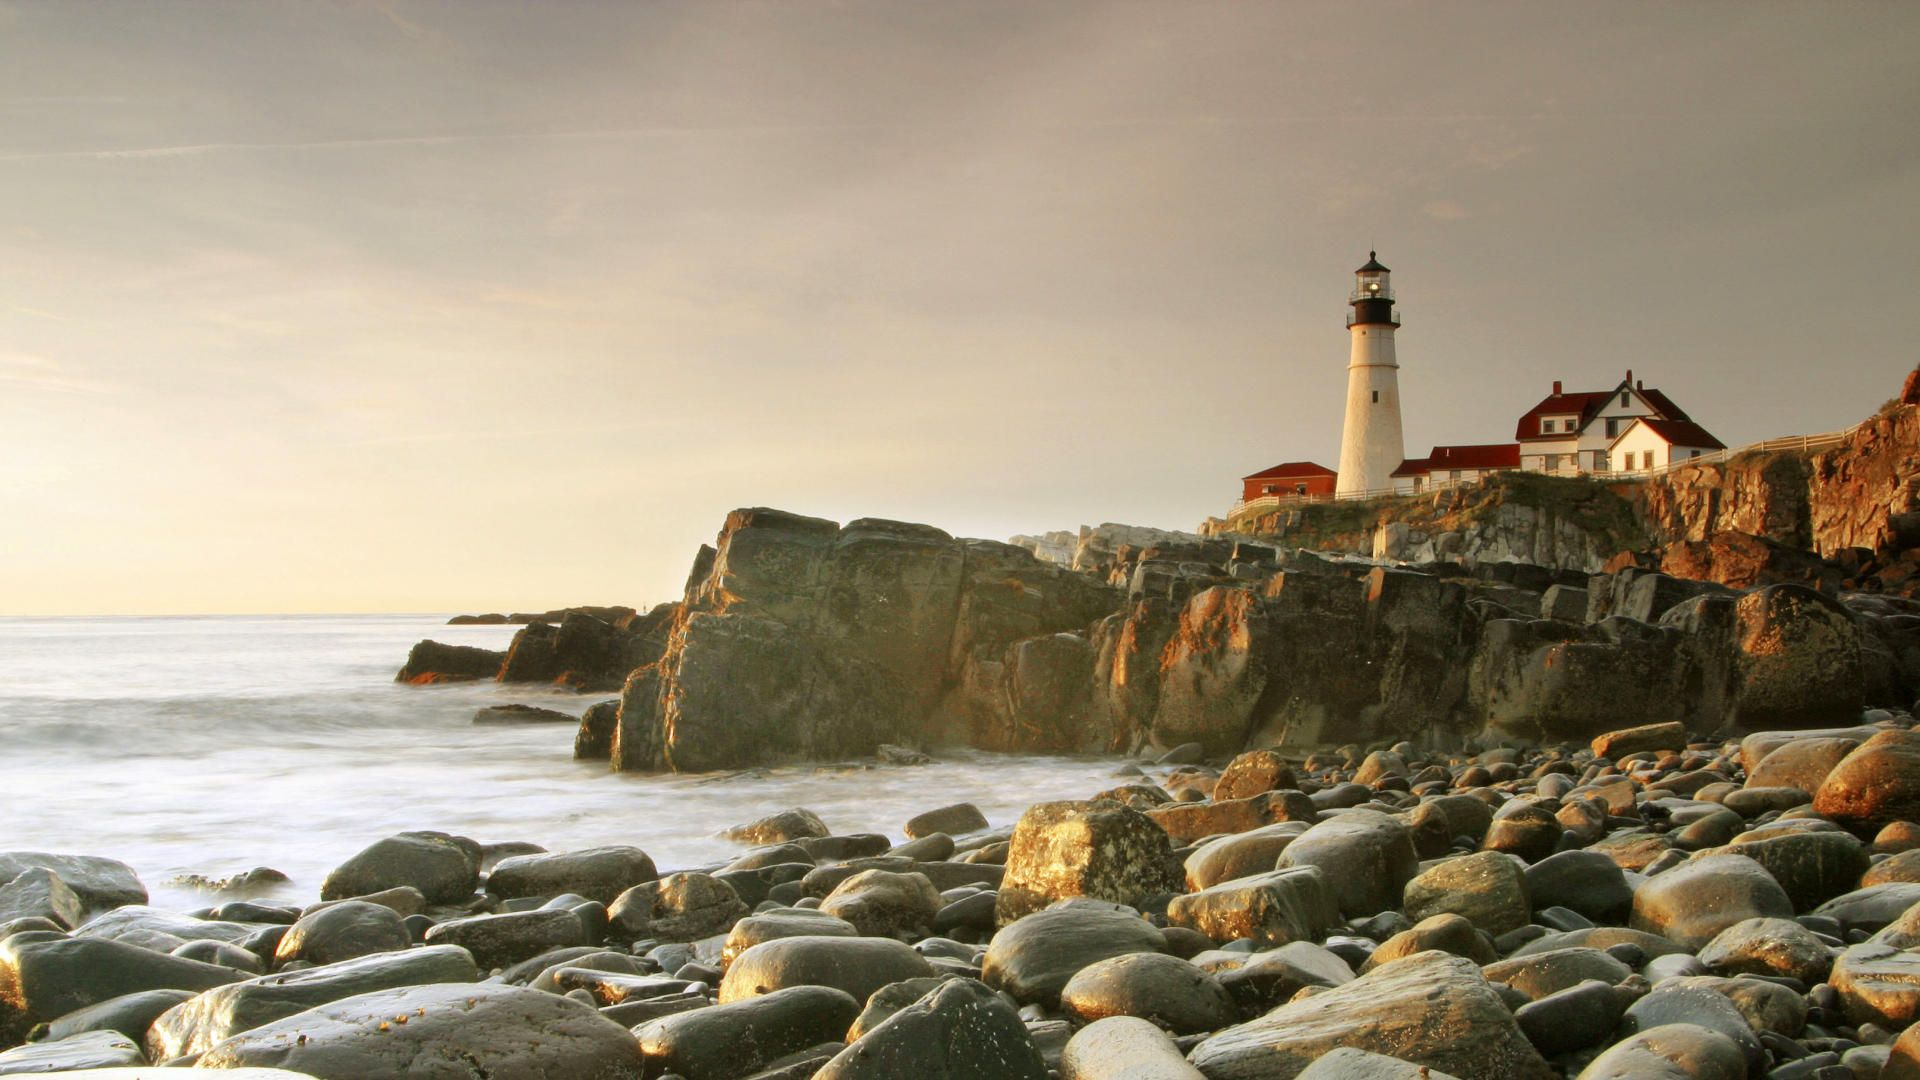 Lighthouse On Rough Rocky Shore in Portl Maine Wallpapers Hd Free .